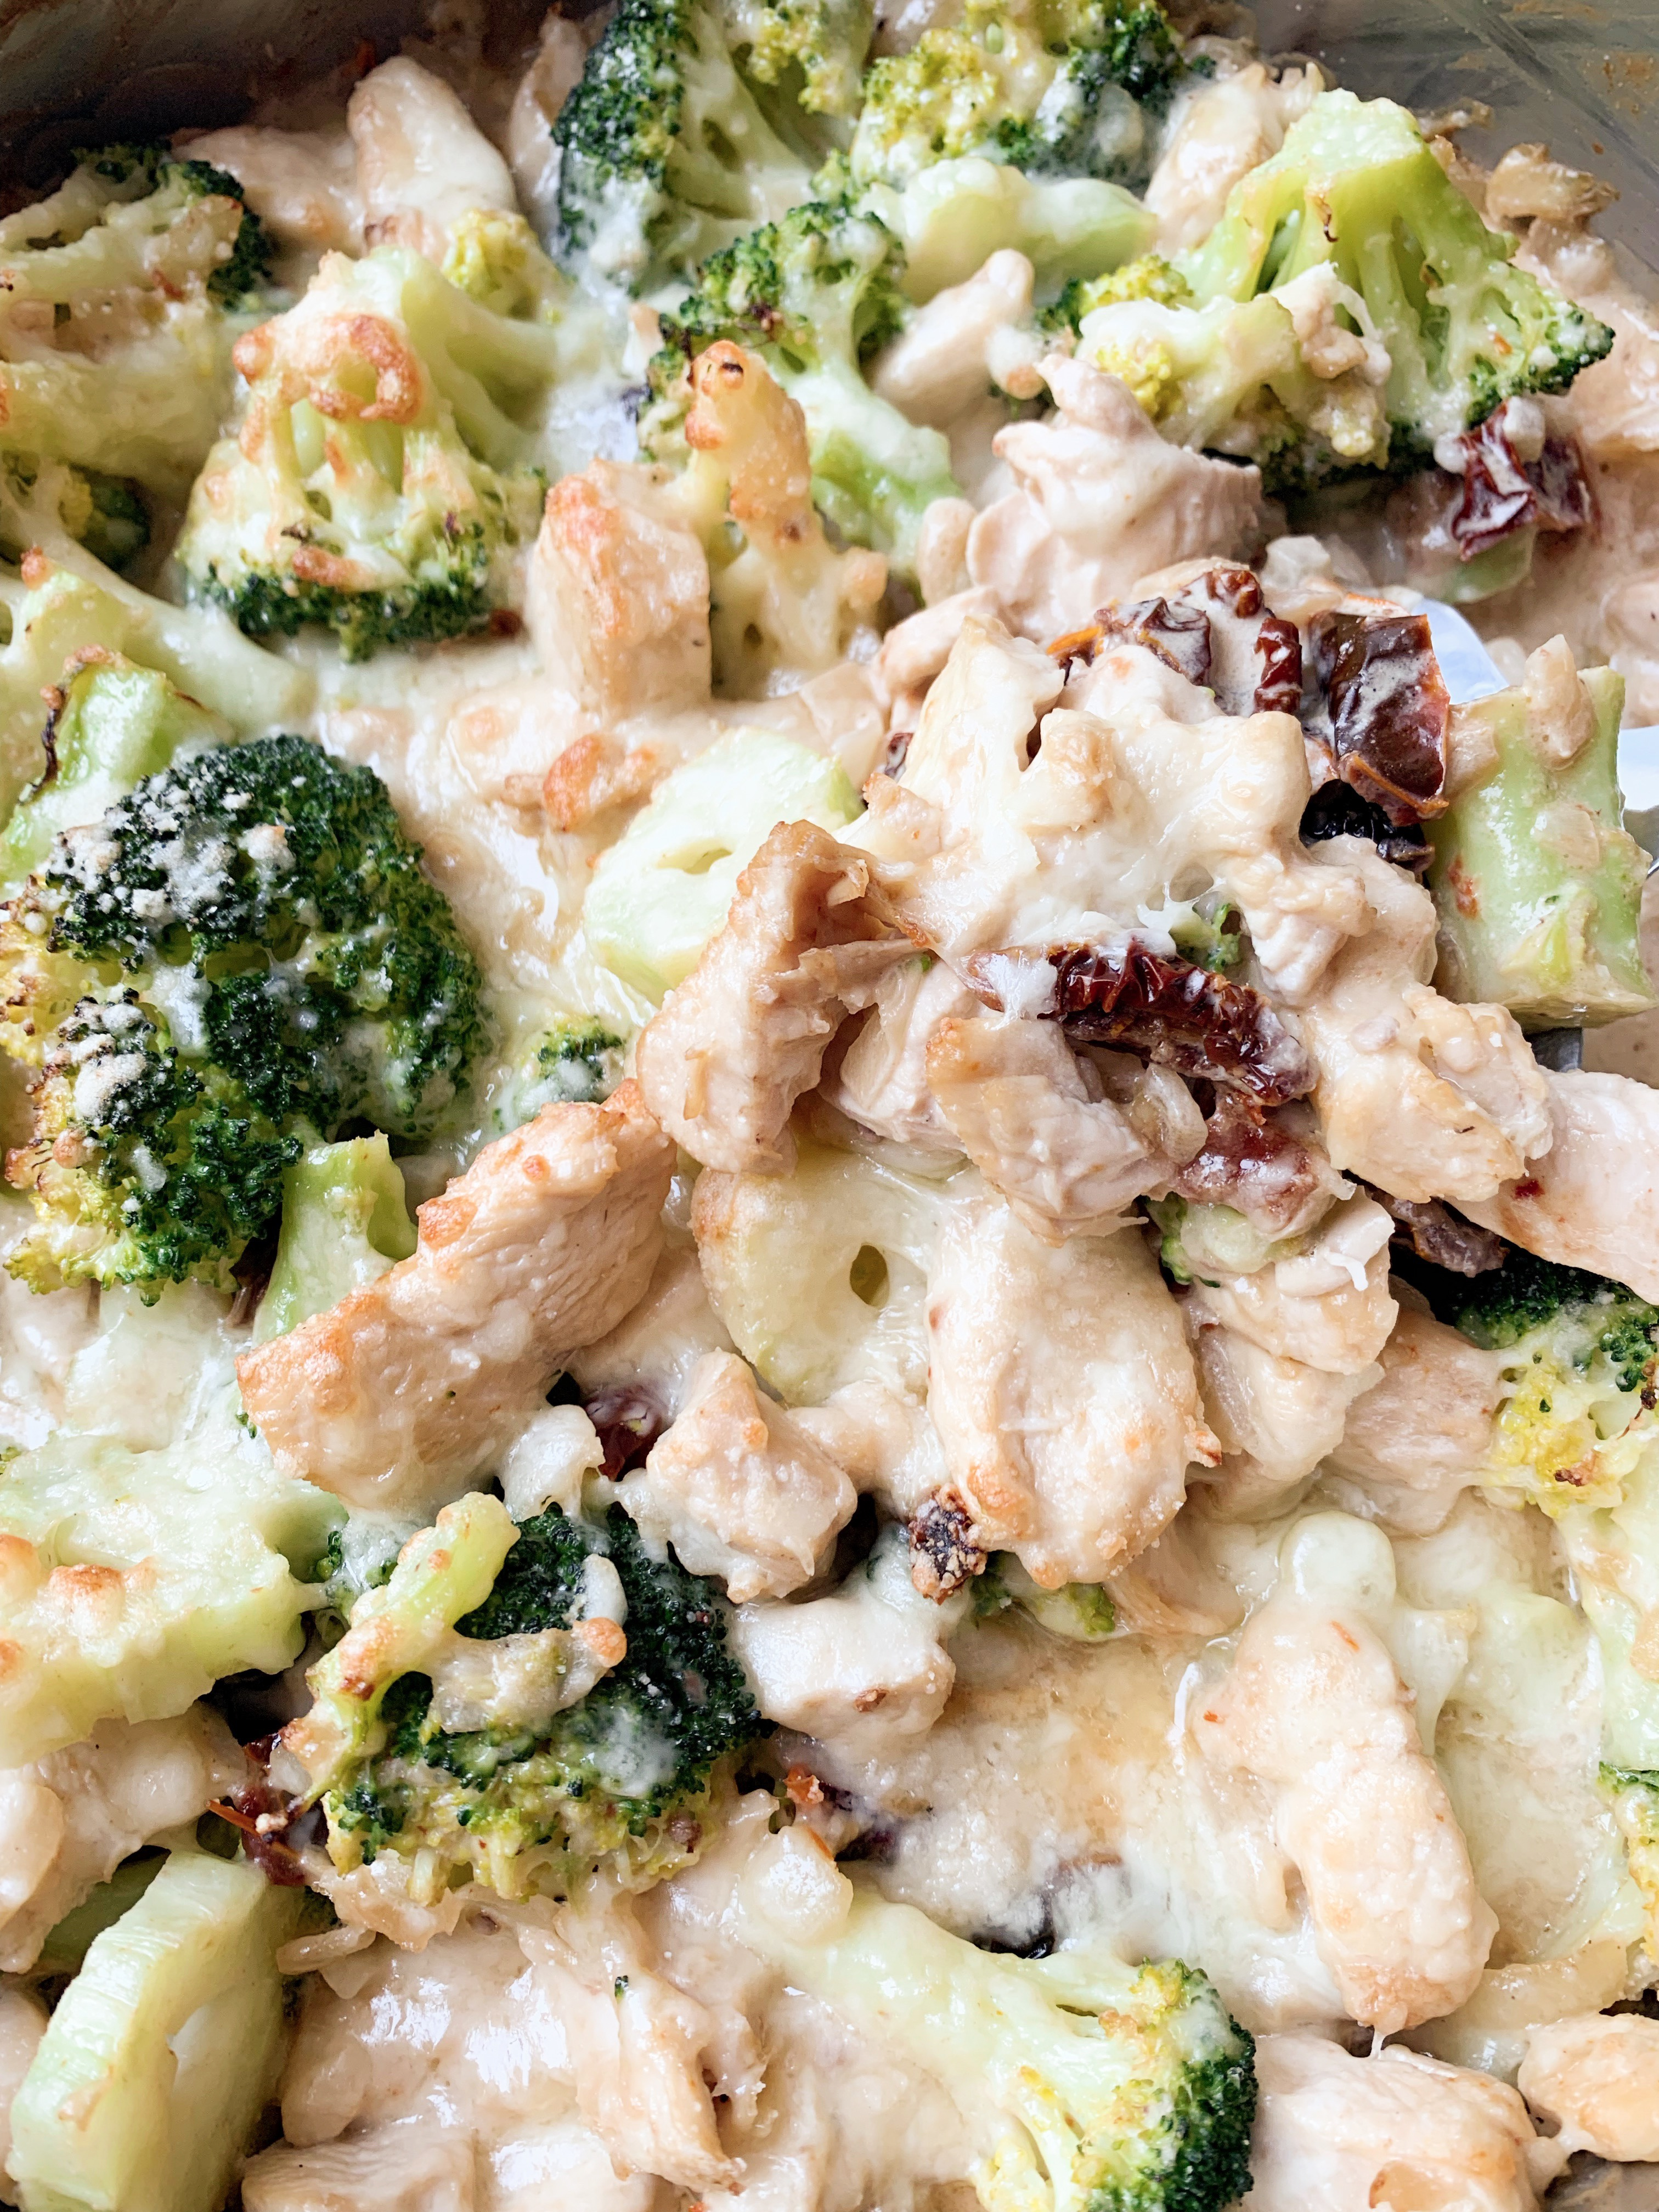 Picture of low carb chicken and broccoli casserole in cheesy sauce